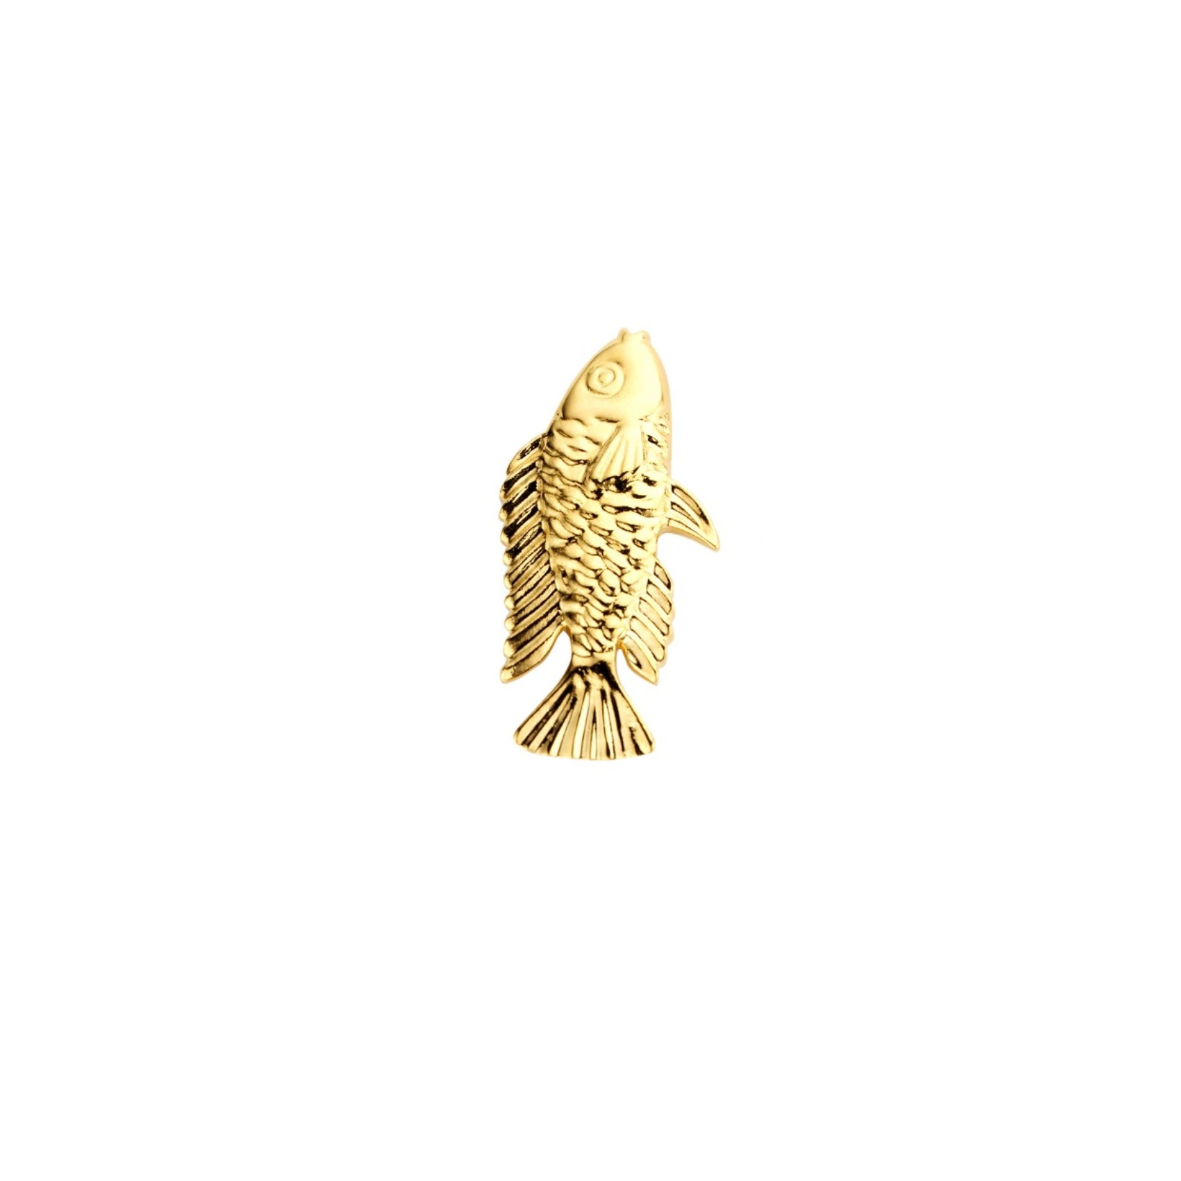 SINGLE Nemo shortie gold earring